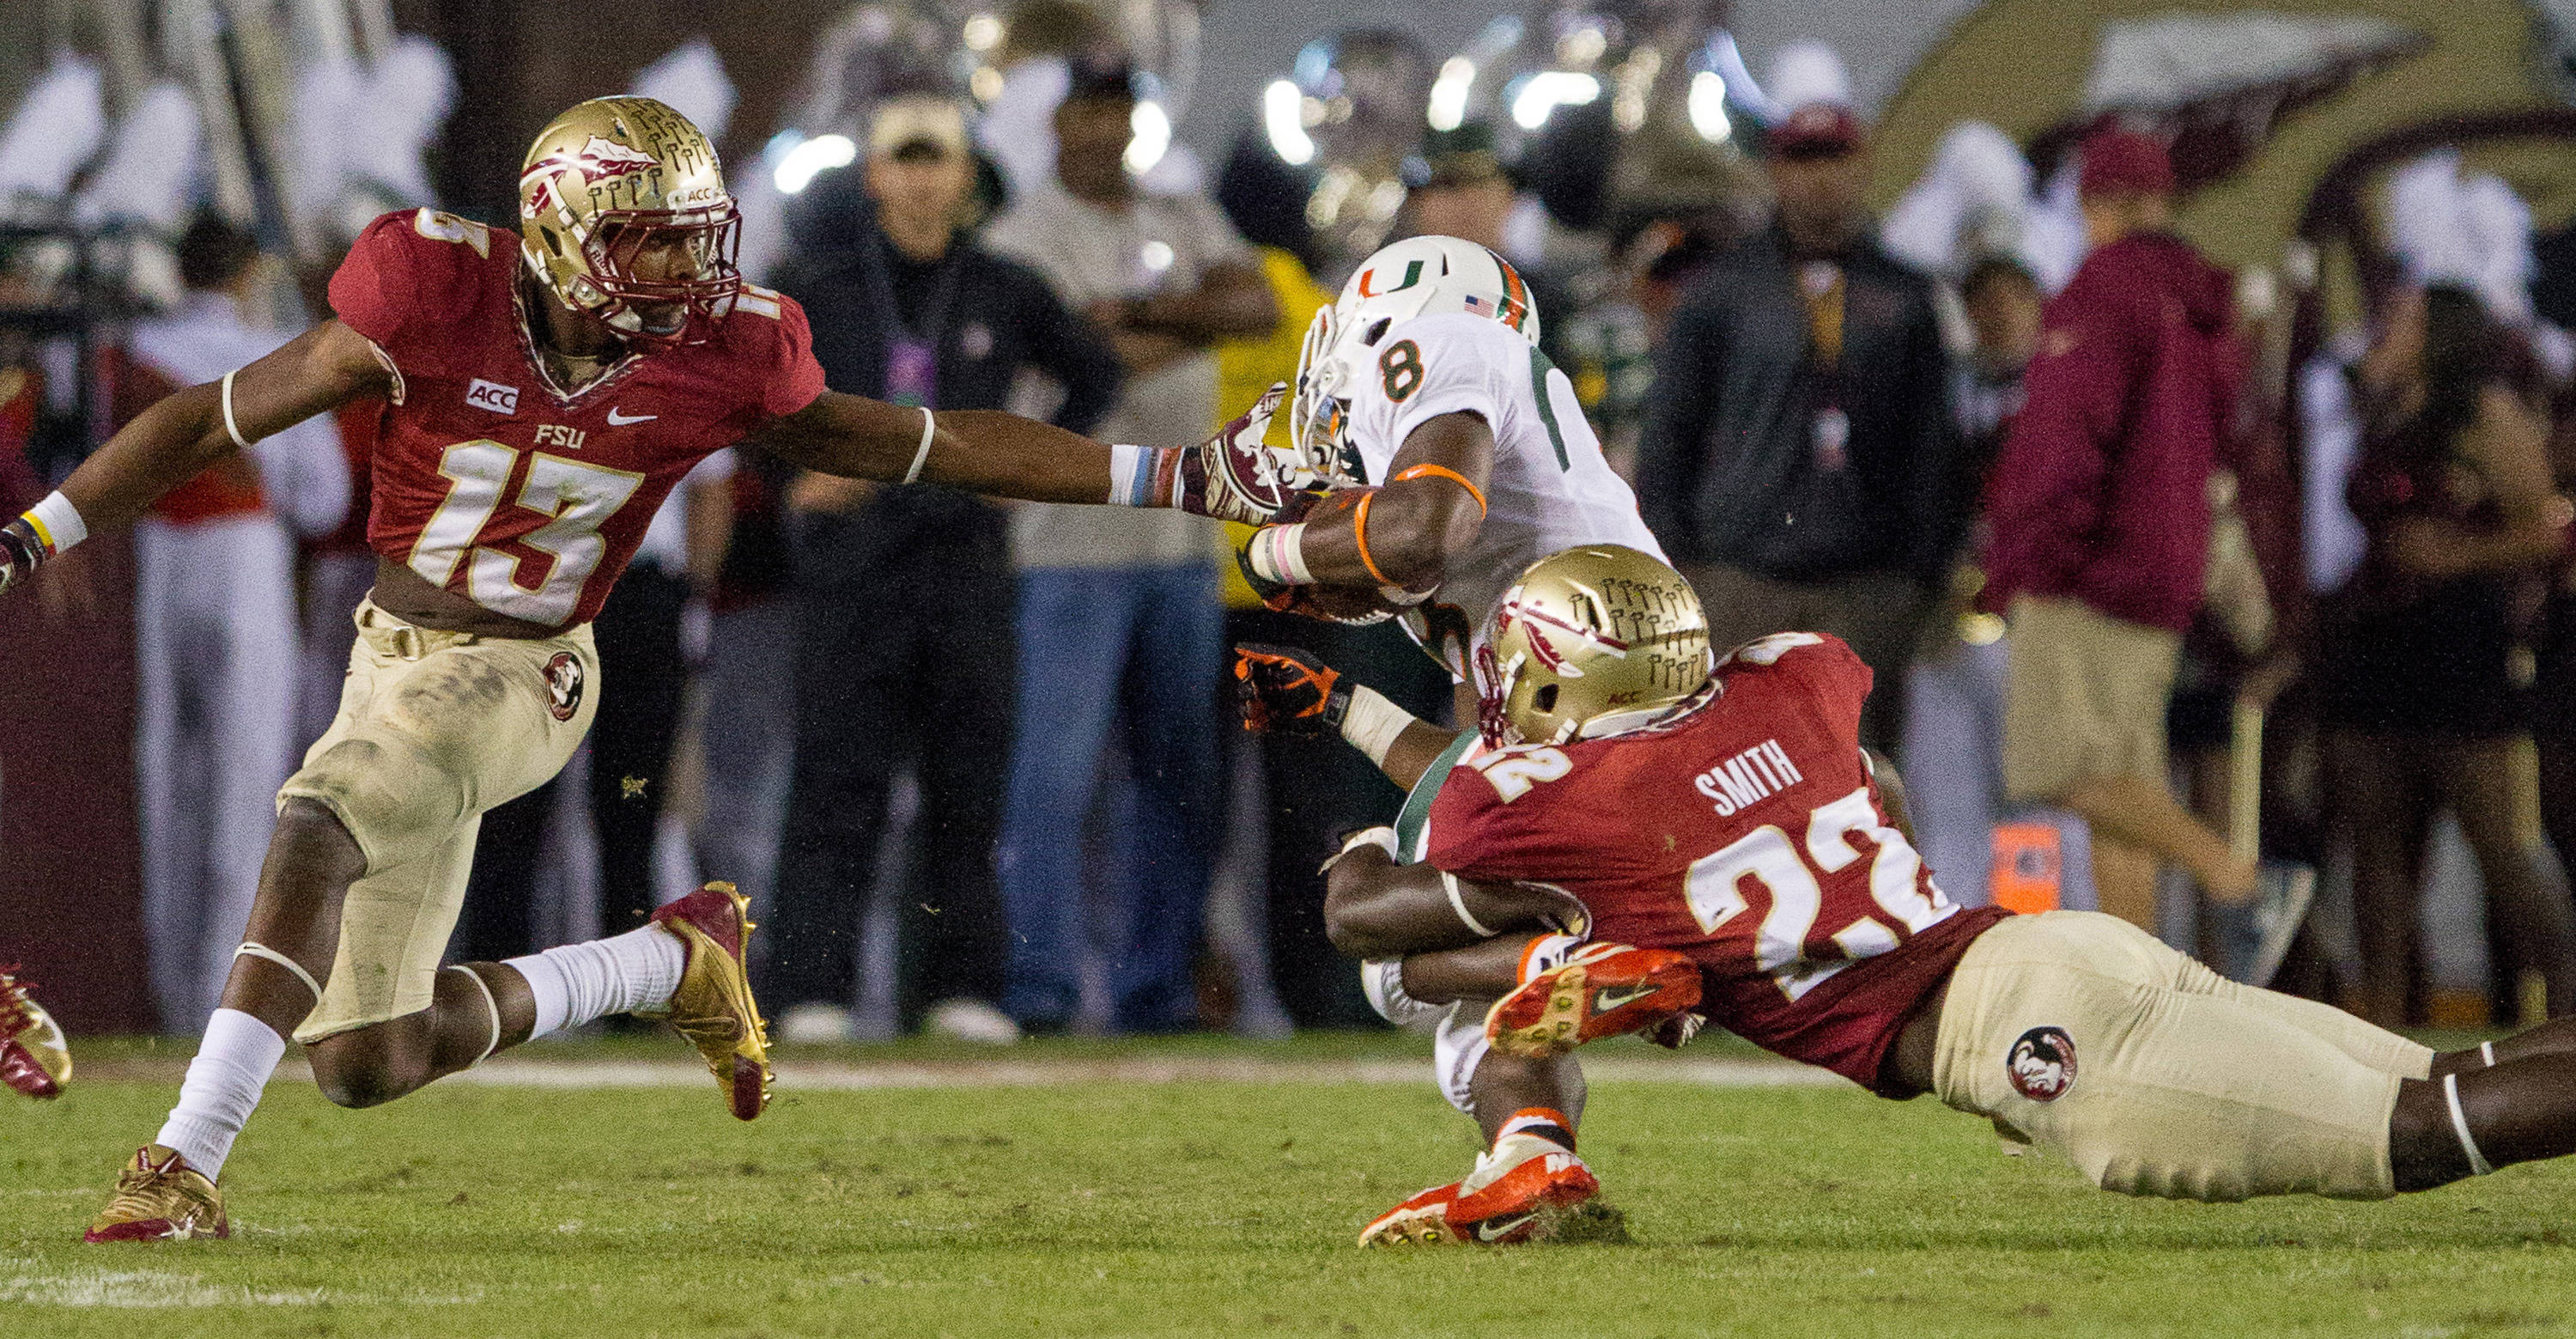 Telvin Smith (22) and Jalen Ramsey (13) take down a  ball carrier during FSU football's 41-14 win over Miami on Saturday, November 2, 2013 in Tallahassee, Fla. Photo by Michael Schwarz.